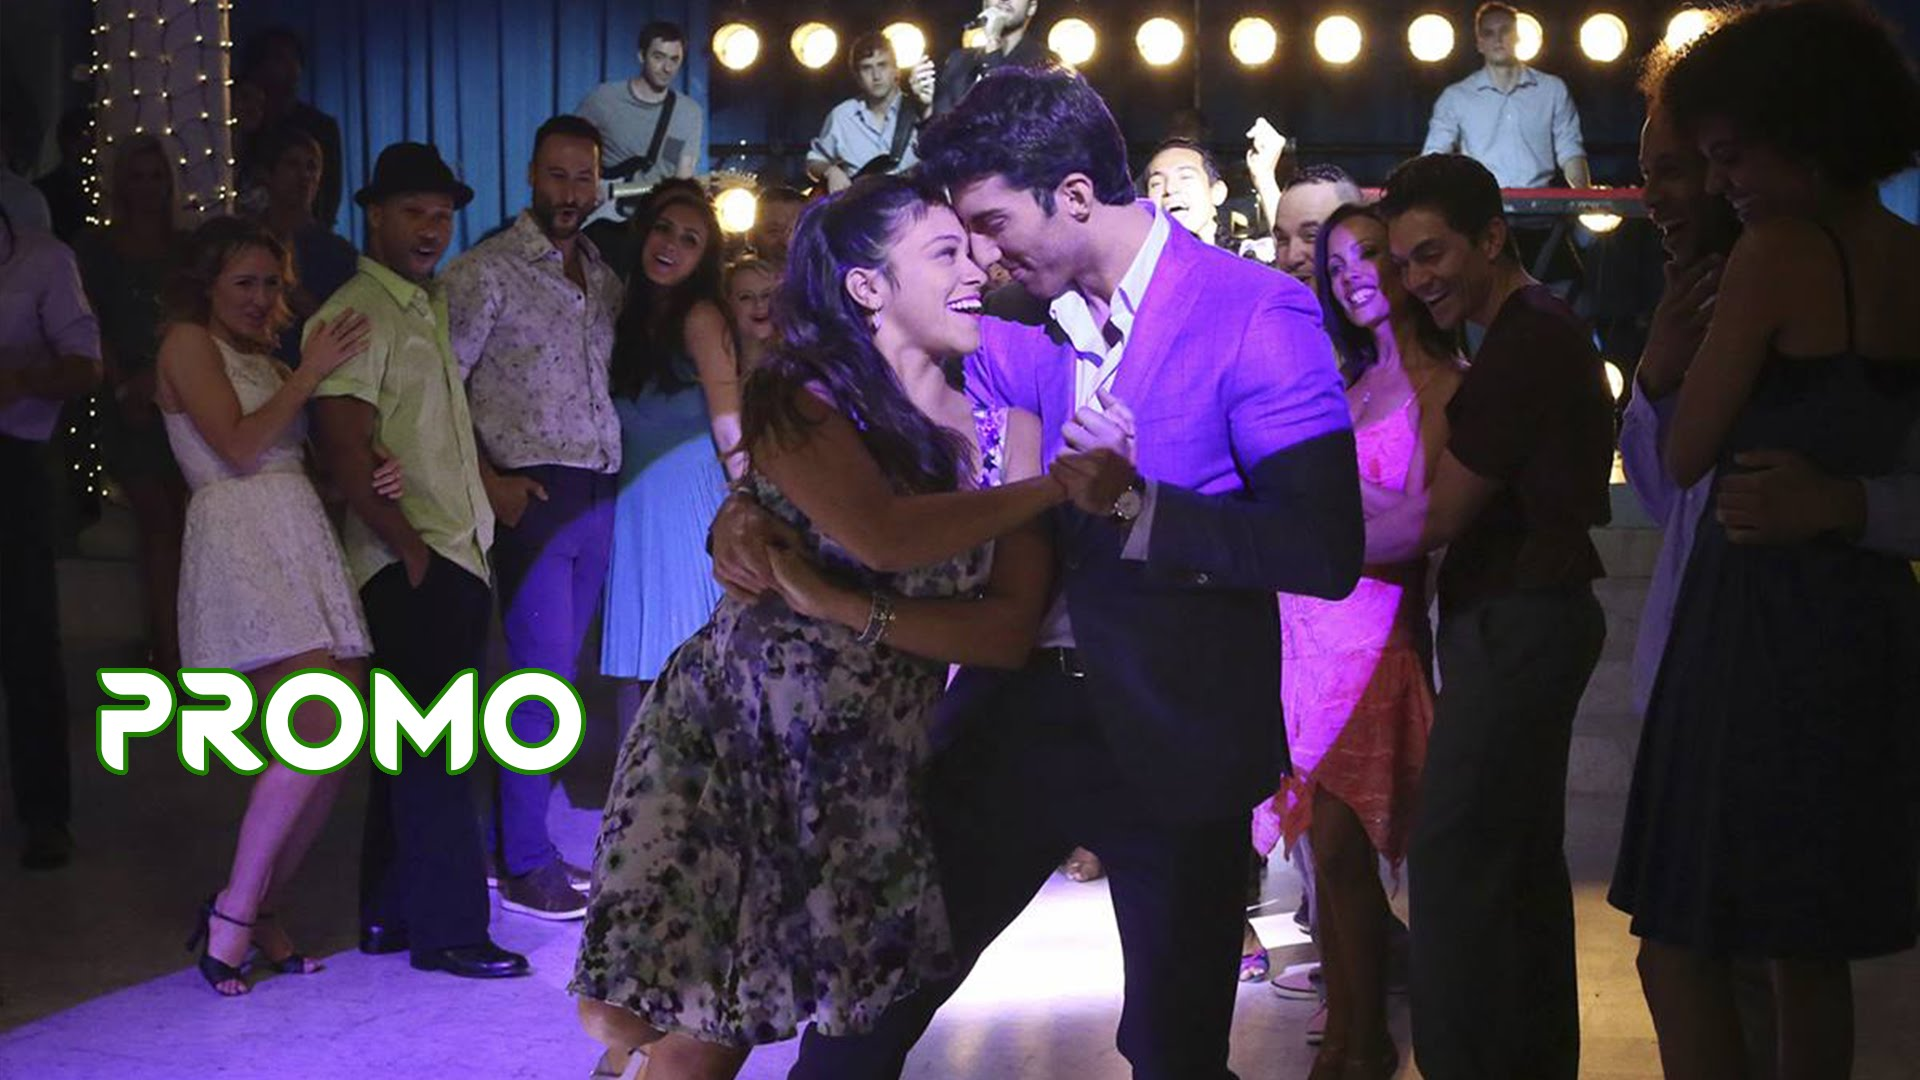 Jane the Virgin embraces diversity and attacks stereotypes